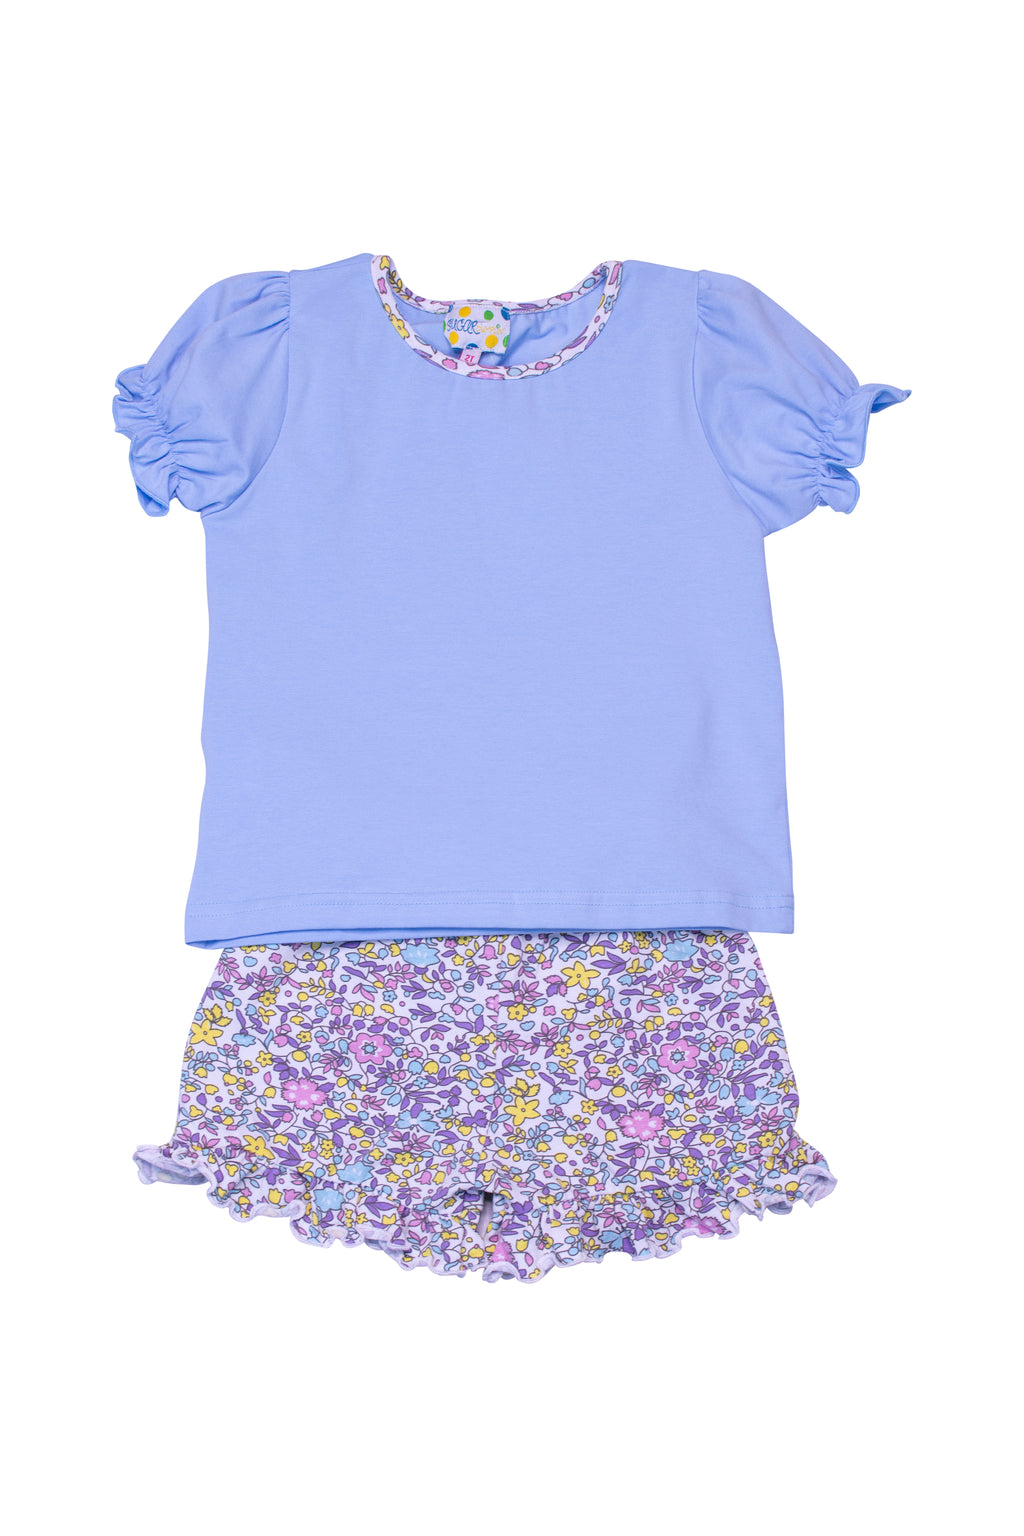 Girls Knit Blue/Floral Shorts Set